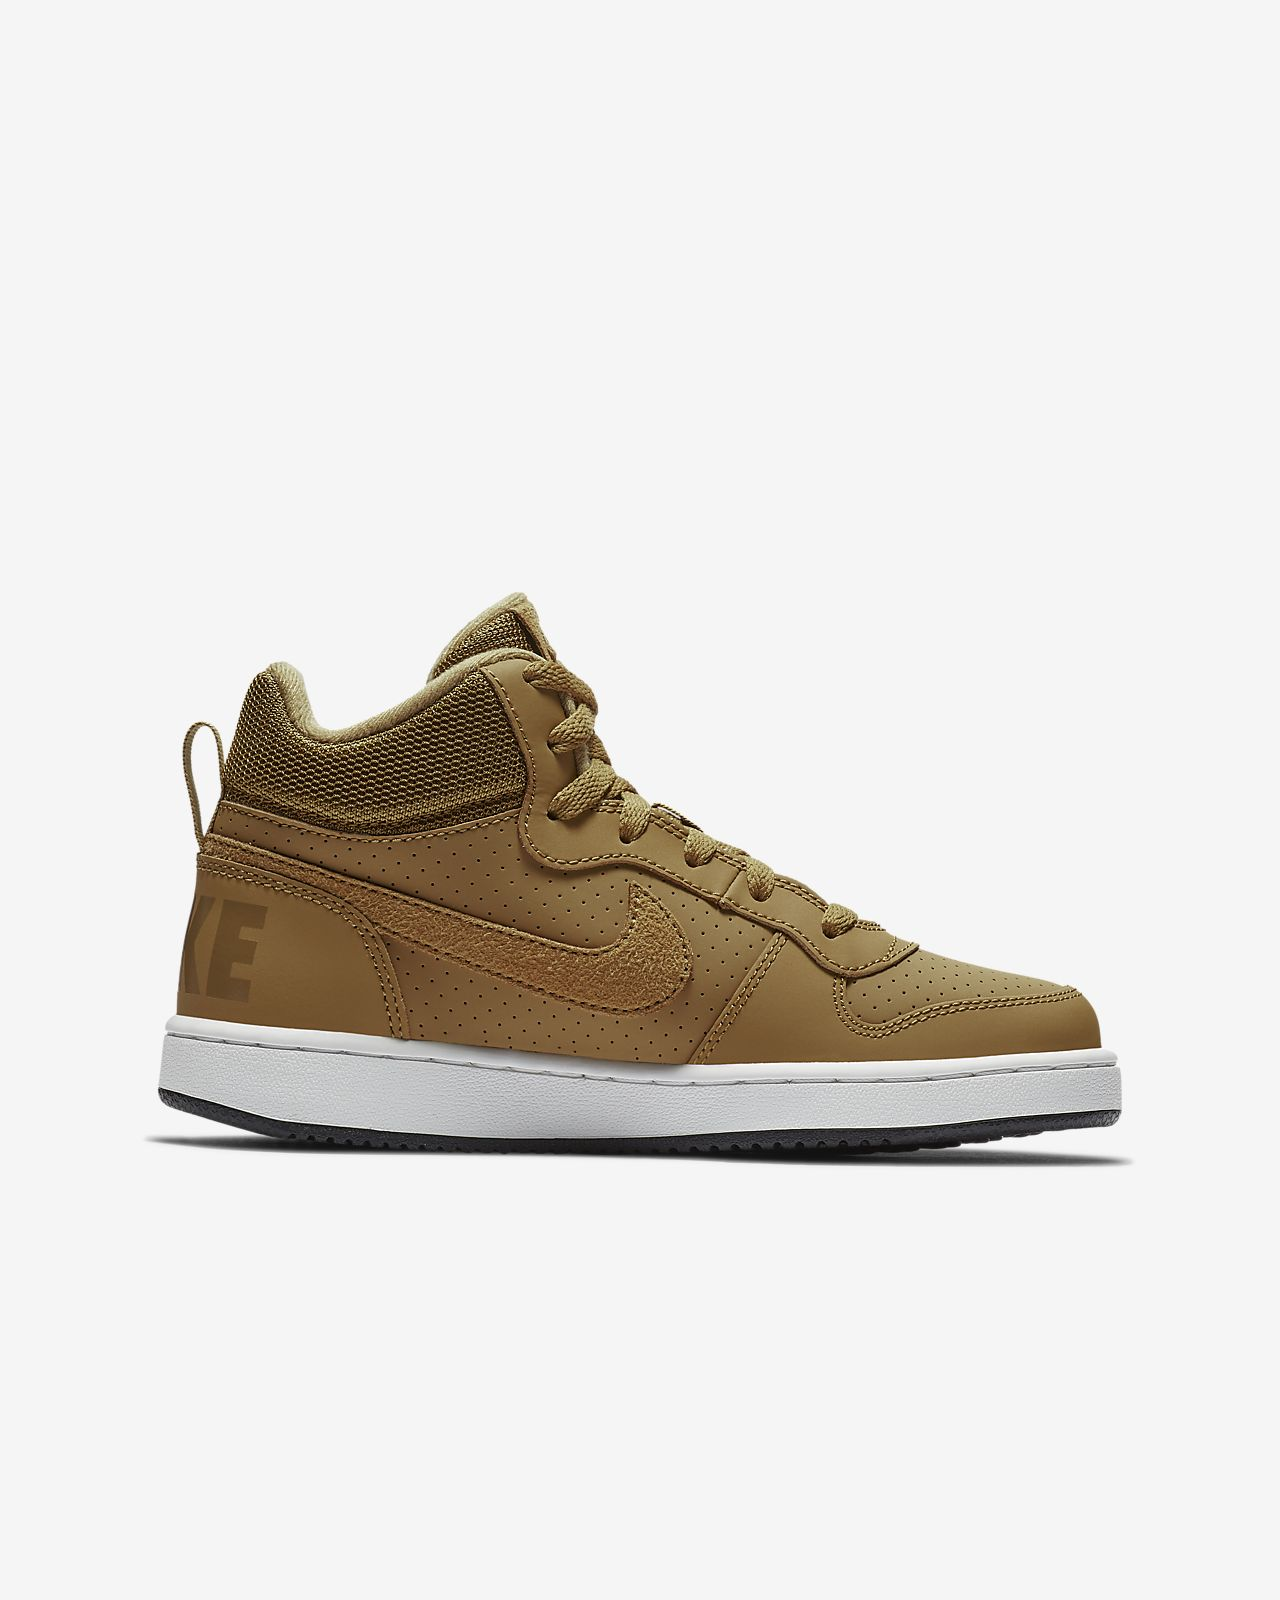 7ab1cbc2c674 Nike Court Borough Mid Older Kids  Shoe. Nike.com AU